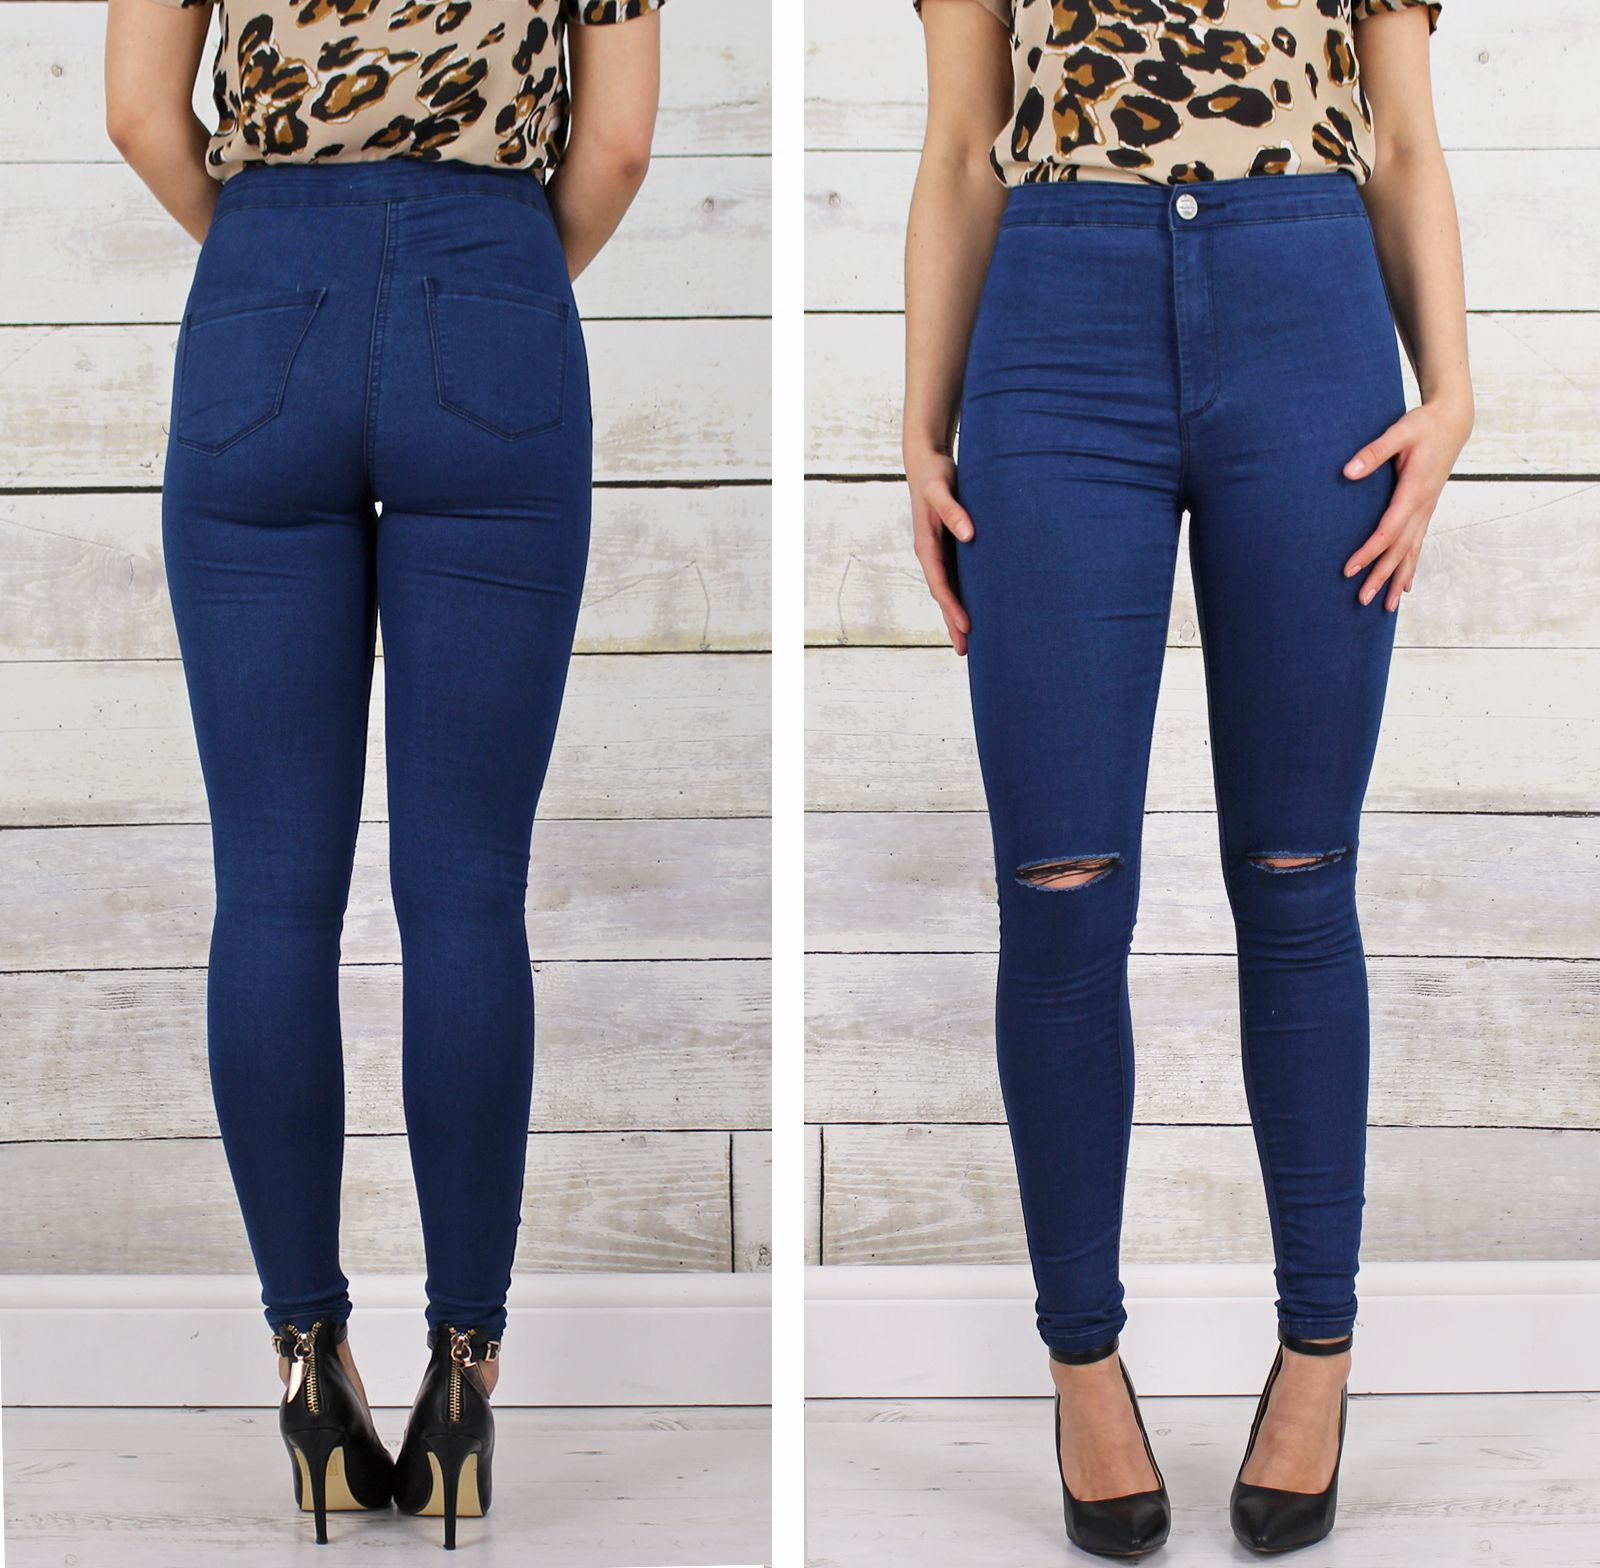 CORE - Highwaisted Ripped Skinny Jeans | S/S Capsule Wardrobe ...